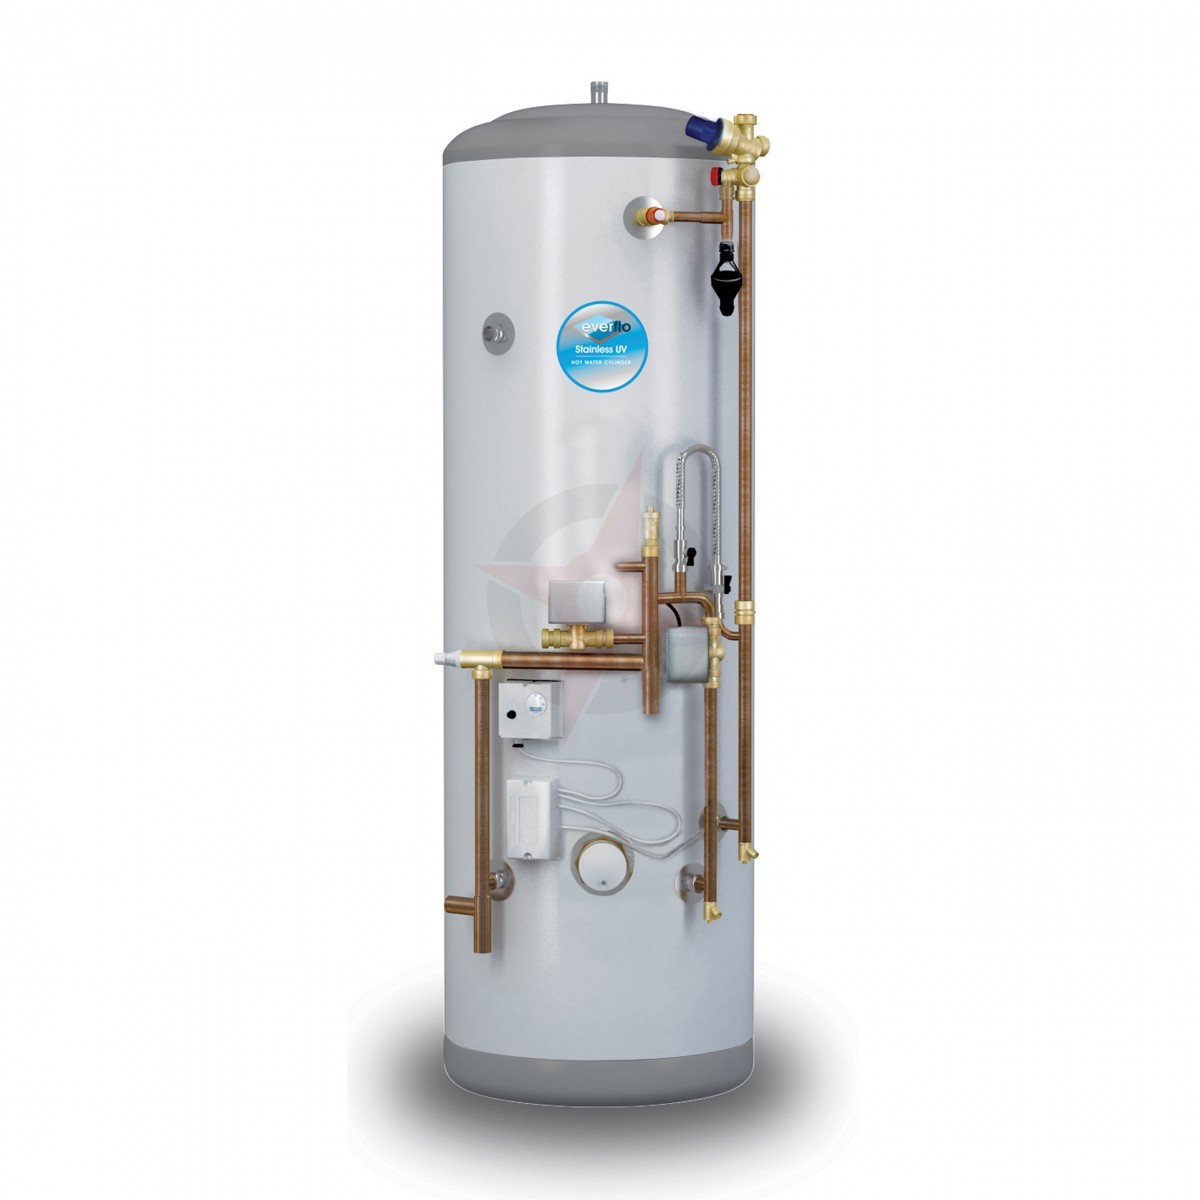 everflo Stainless 180L System Fit Pre Plumbed Unvented Hot Water ...